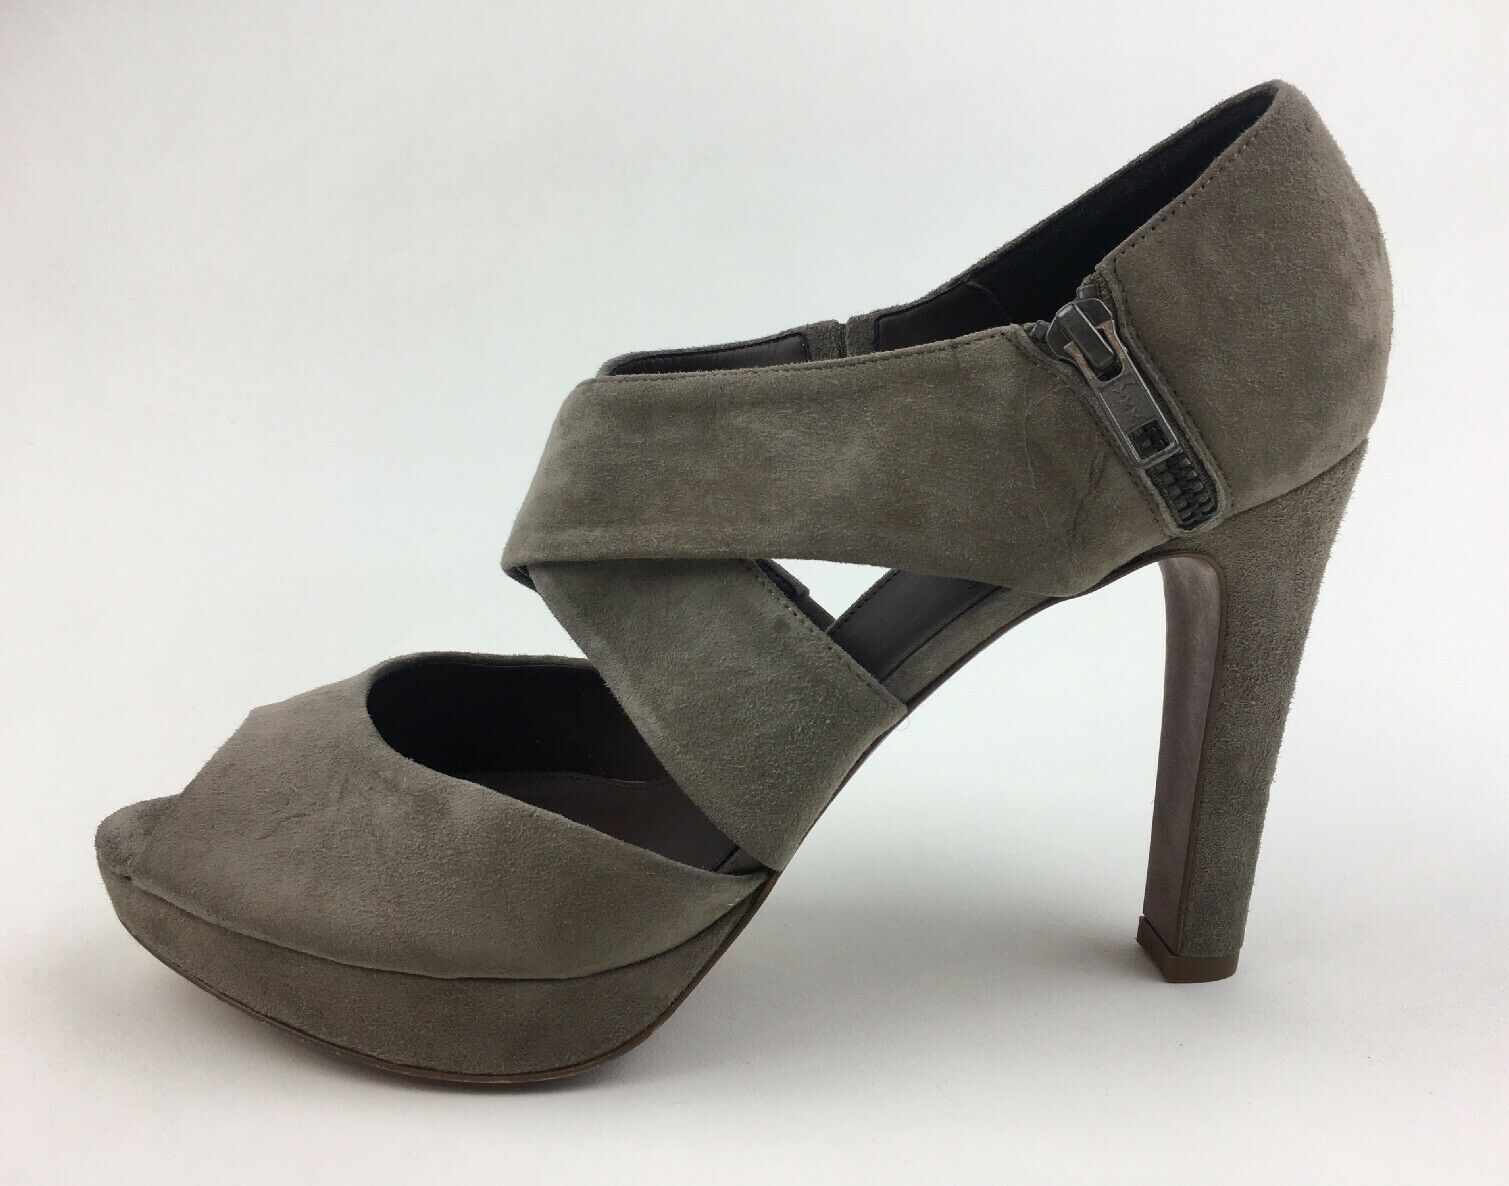 J. Crew Lindy guard  toe Cross Strap Heels side zip Sz 11, Stone Suede 2200  bellissimo